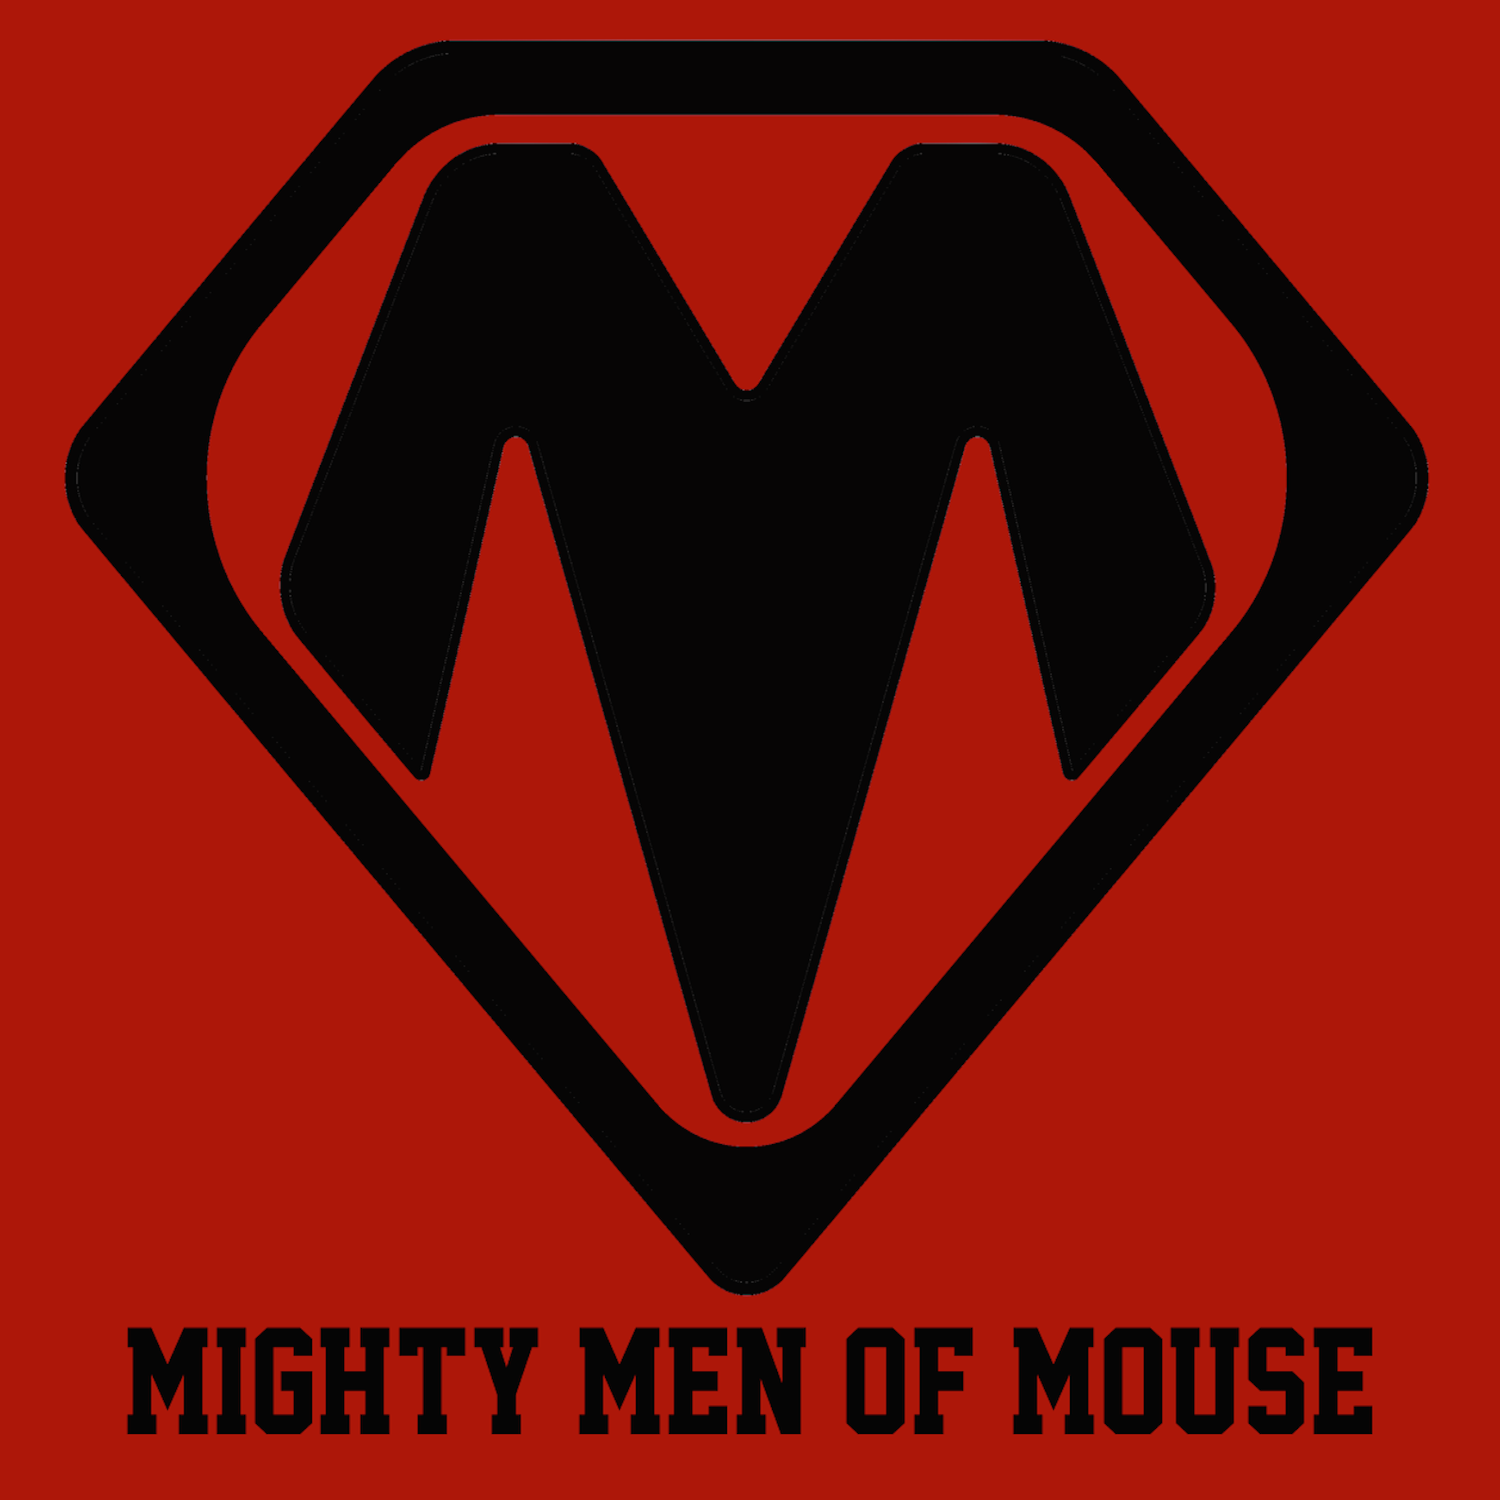 Mighty Men of Mouse: Episode 0398 -- Russ is Universal show art